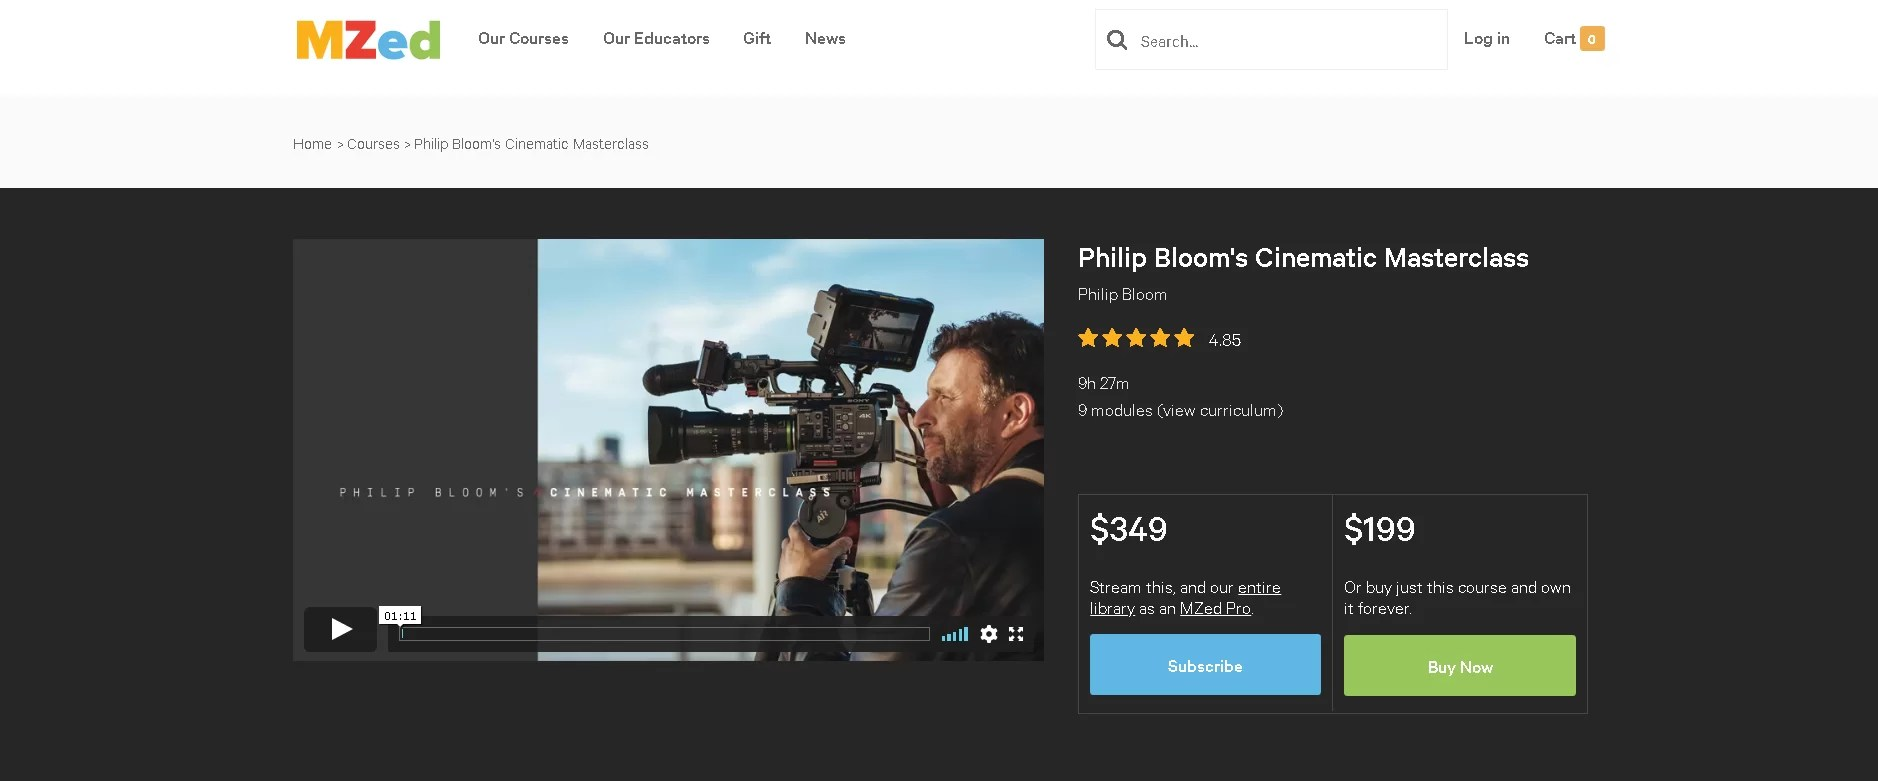 A complete Online Filmmaking Course for beginners that's only $99!